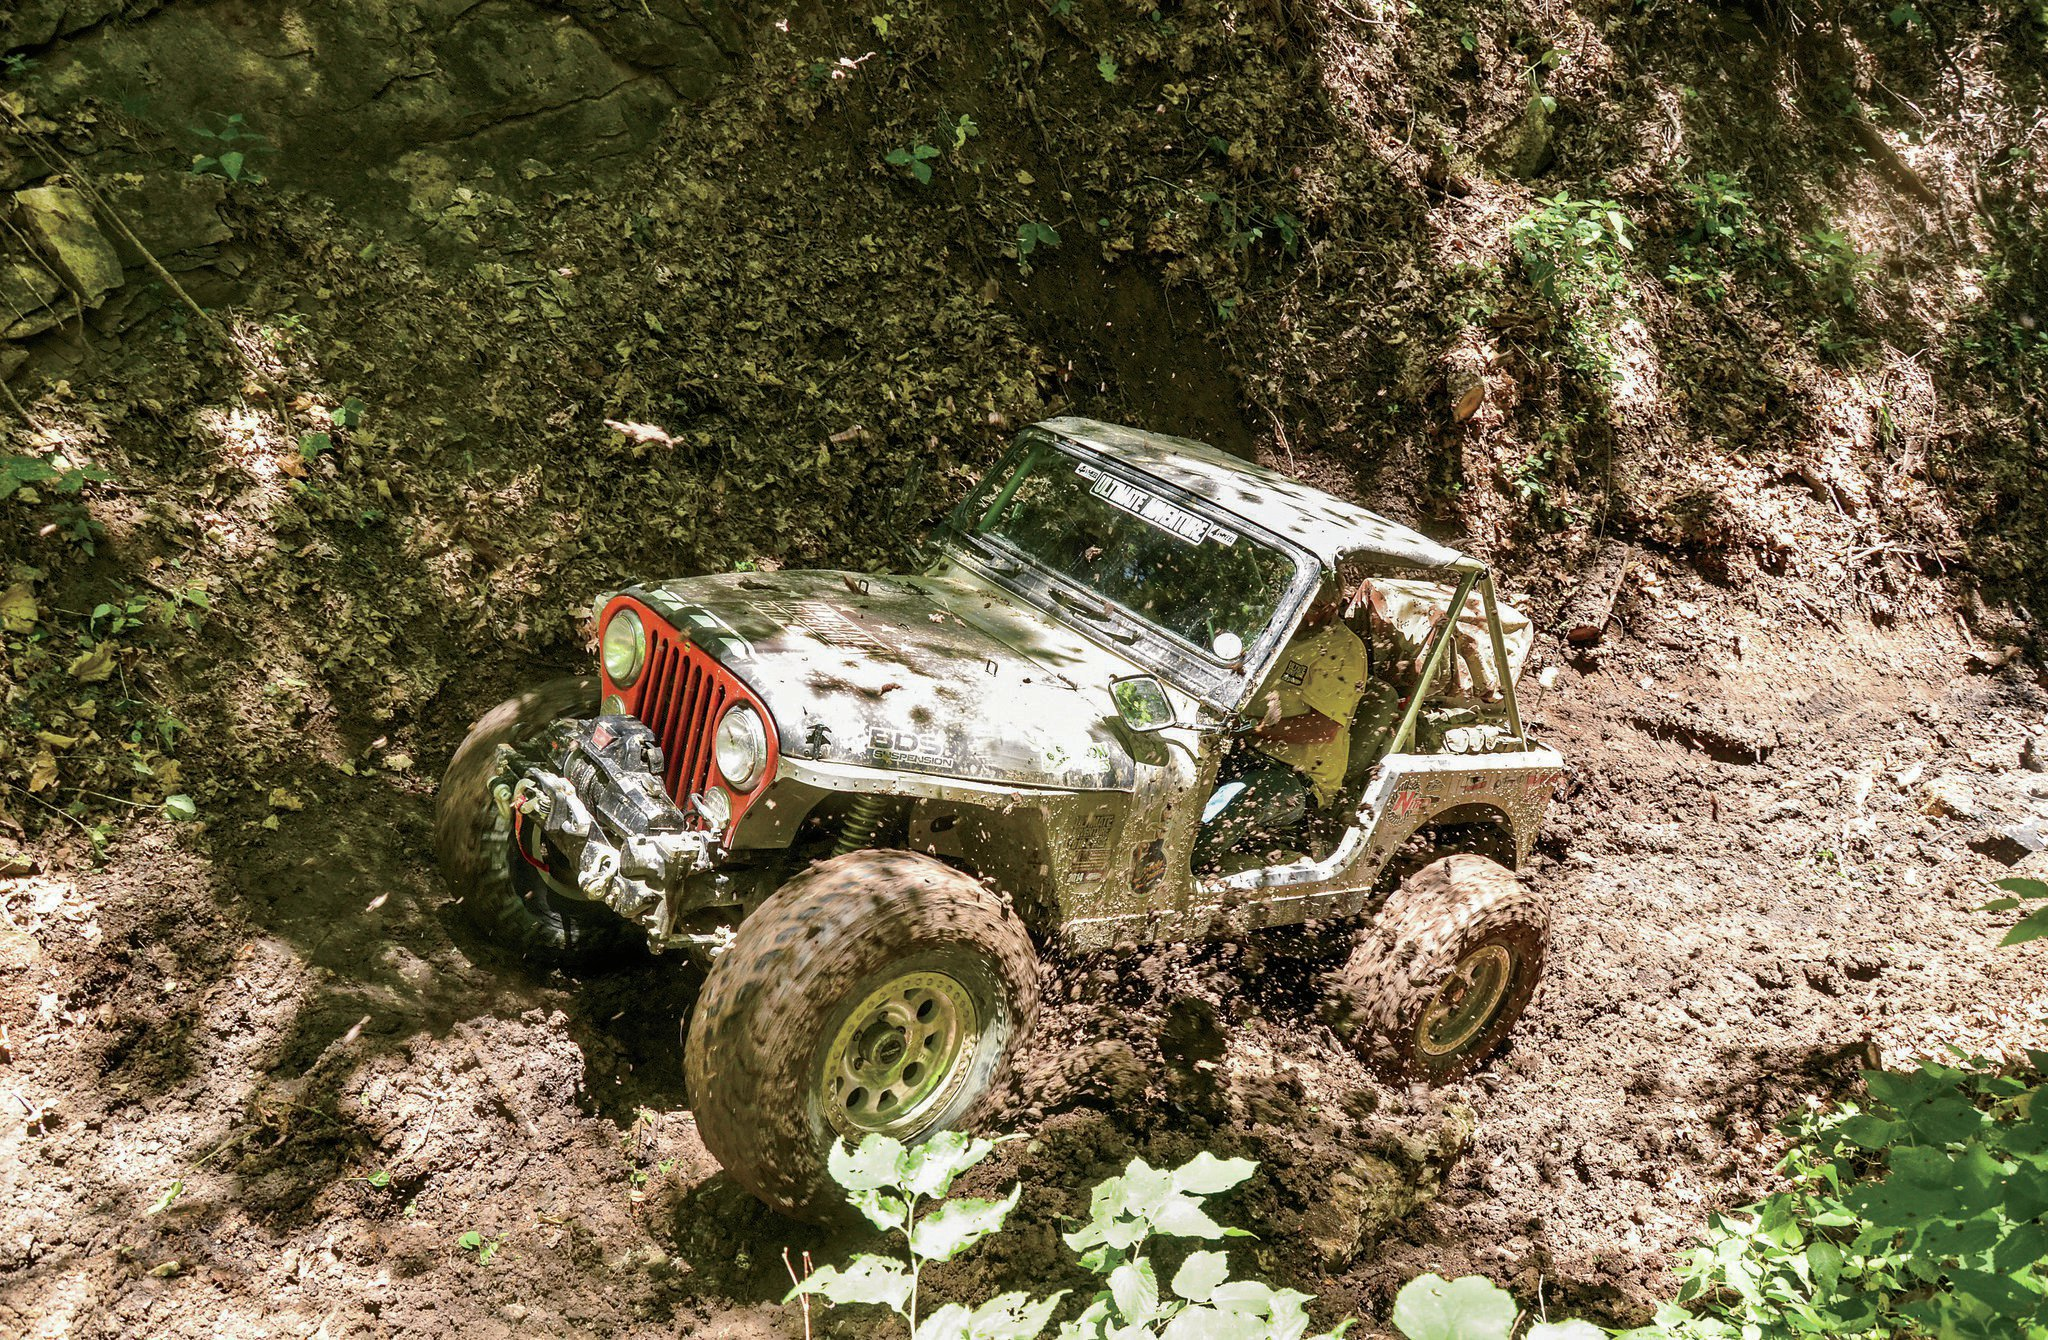 General Péwé slings some mud in UA 2010's own CJ-17. These slick, large rocks at the bottom of Bad Dog on the Atlas Trail made getting a good run at the hillclimb difficult, if not impossible.